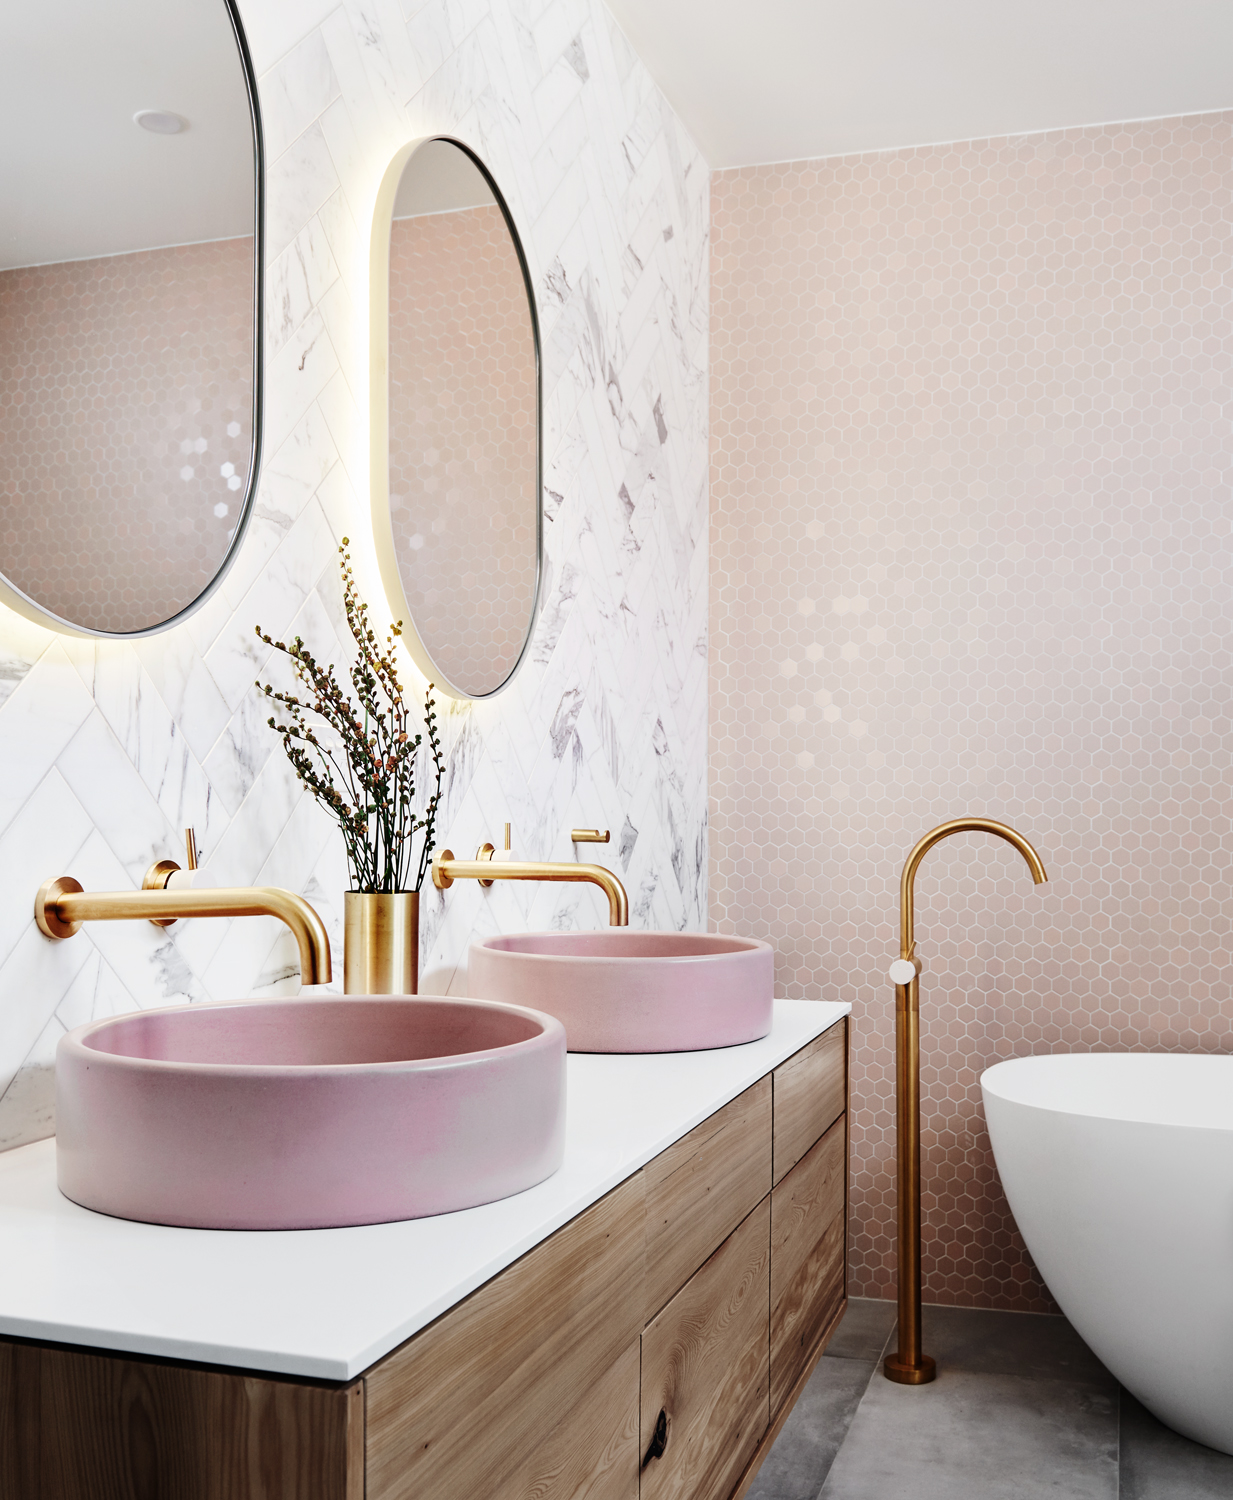 Pink bathroom - How to Decorate According to Your Star Sign - Capricorn